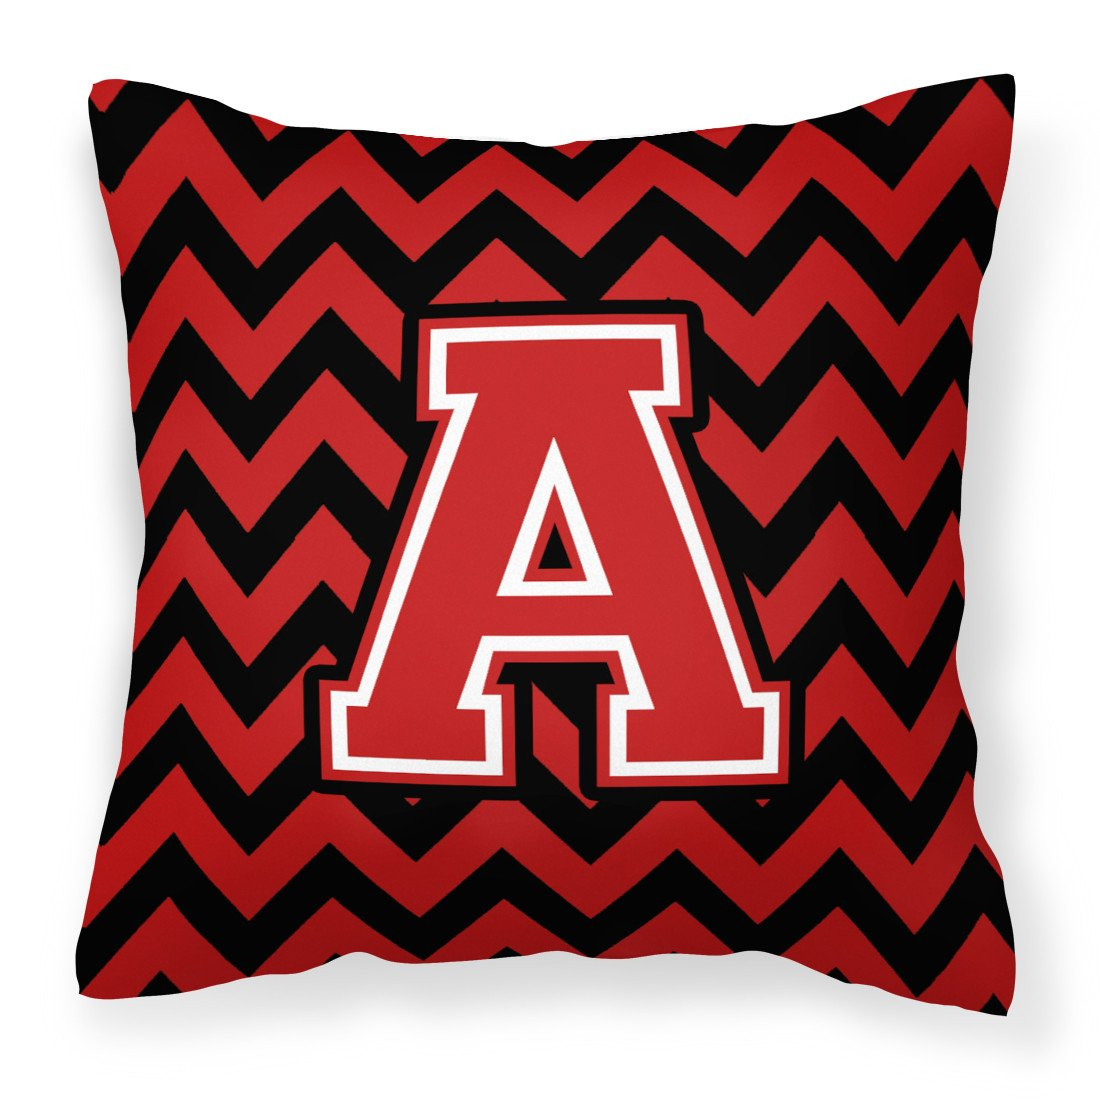 Letter A Chevron Black and Red   Fabric Decorative Pillow CJ1047-APW1414 by Caroline's Treasures